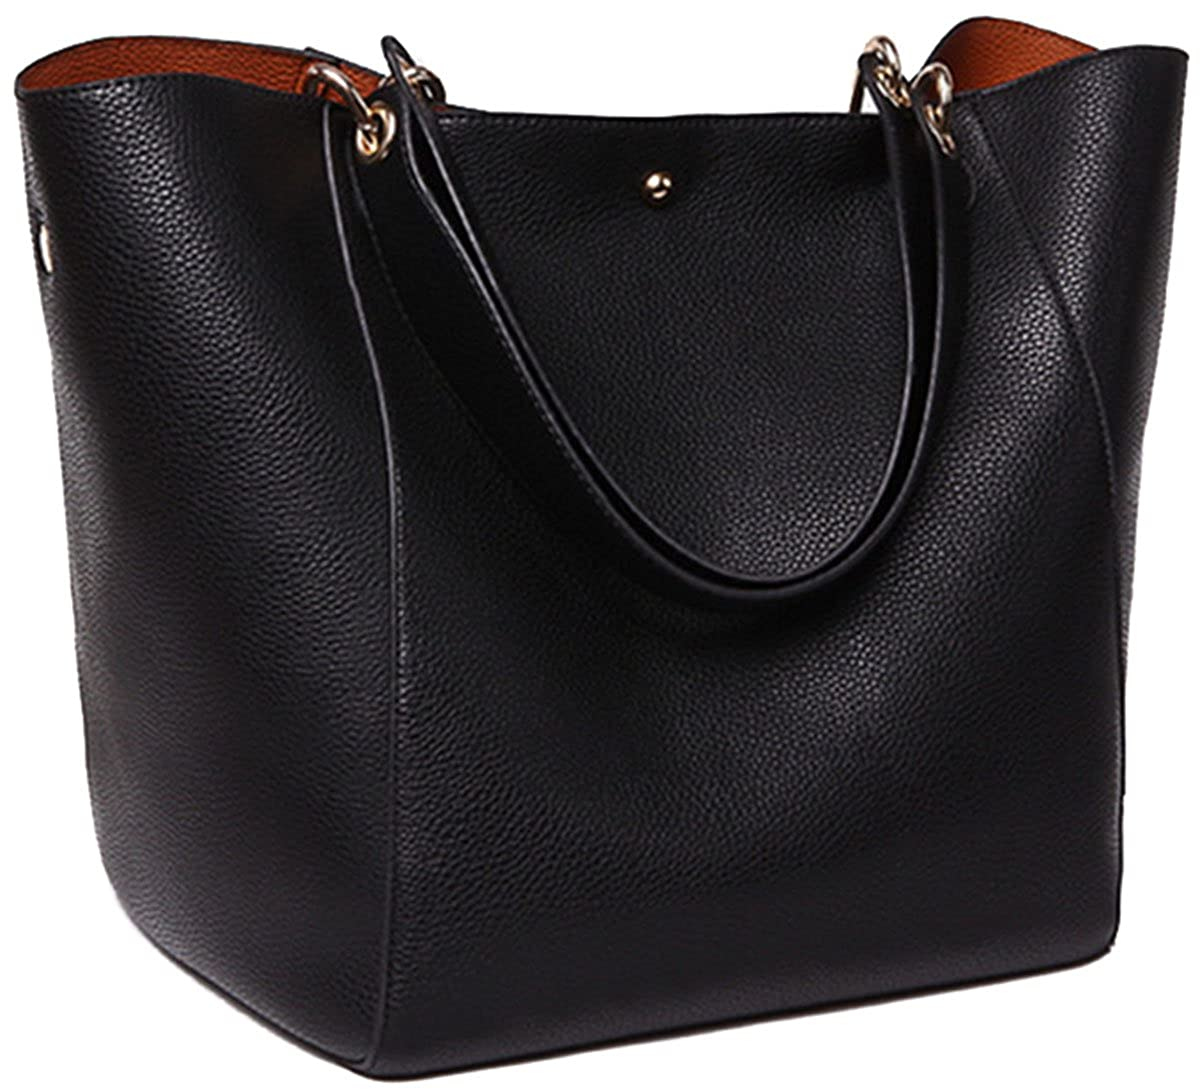 f5462b0bfdca Amazon.com  SQLP Work Tote Bags for Women s Leather Purse and handbags  ladies Waterproof Shoulder commuter Bag Black  Shoes